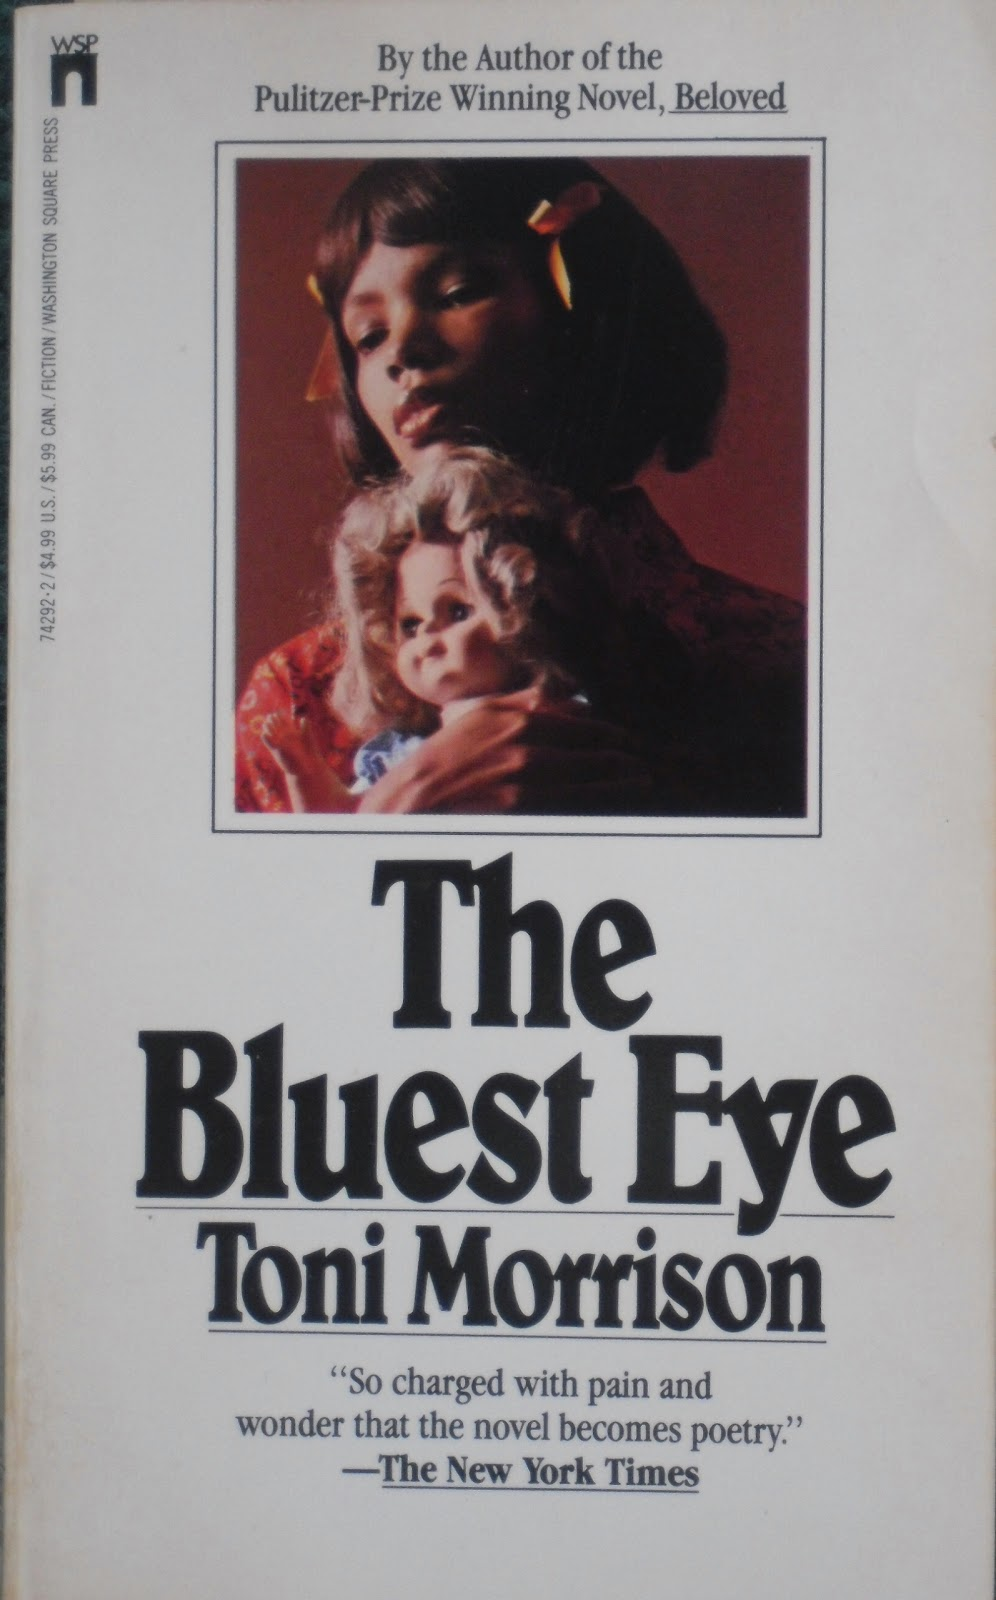 an analysis of pecola breedlove in the bluest eye by toni morrison The bluest eye by toni morrison home the bluest eye analysis pecola wants to disappearpecola doesn't want to be seen and begins imagining the day.